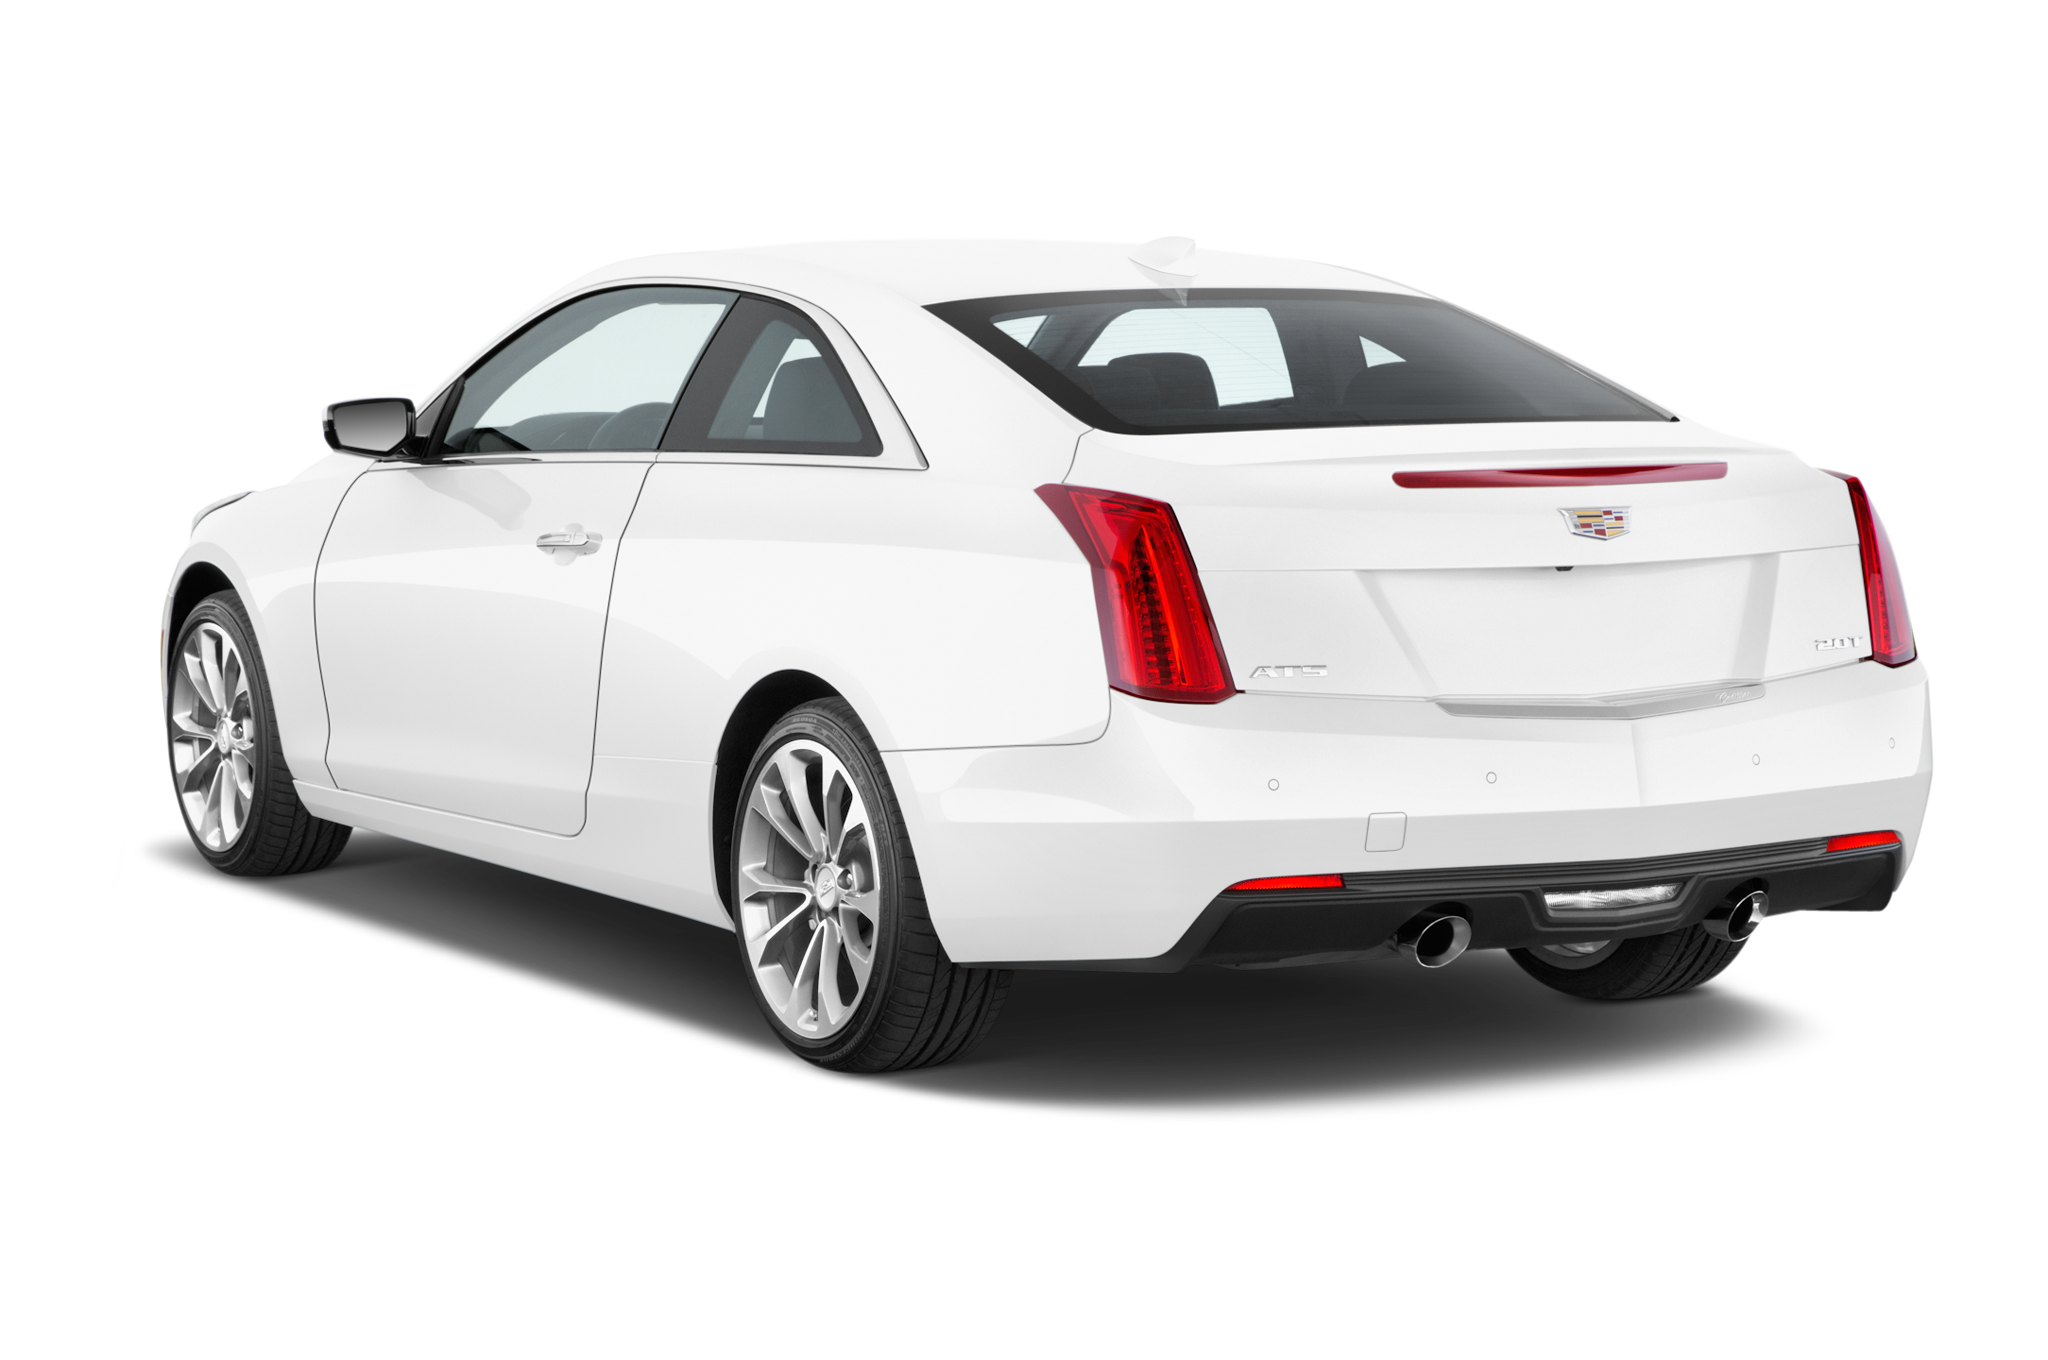 Cadillac ATS COUPE 2 0T Premium Collection RWD 2015 International